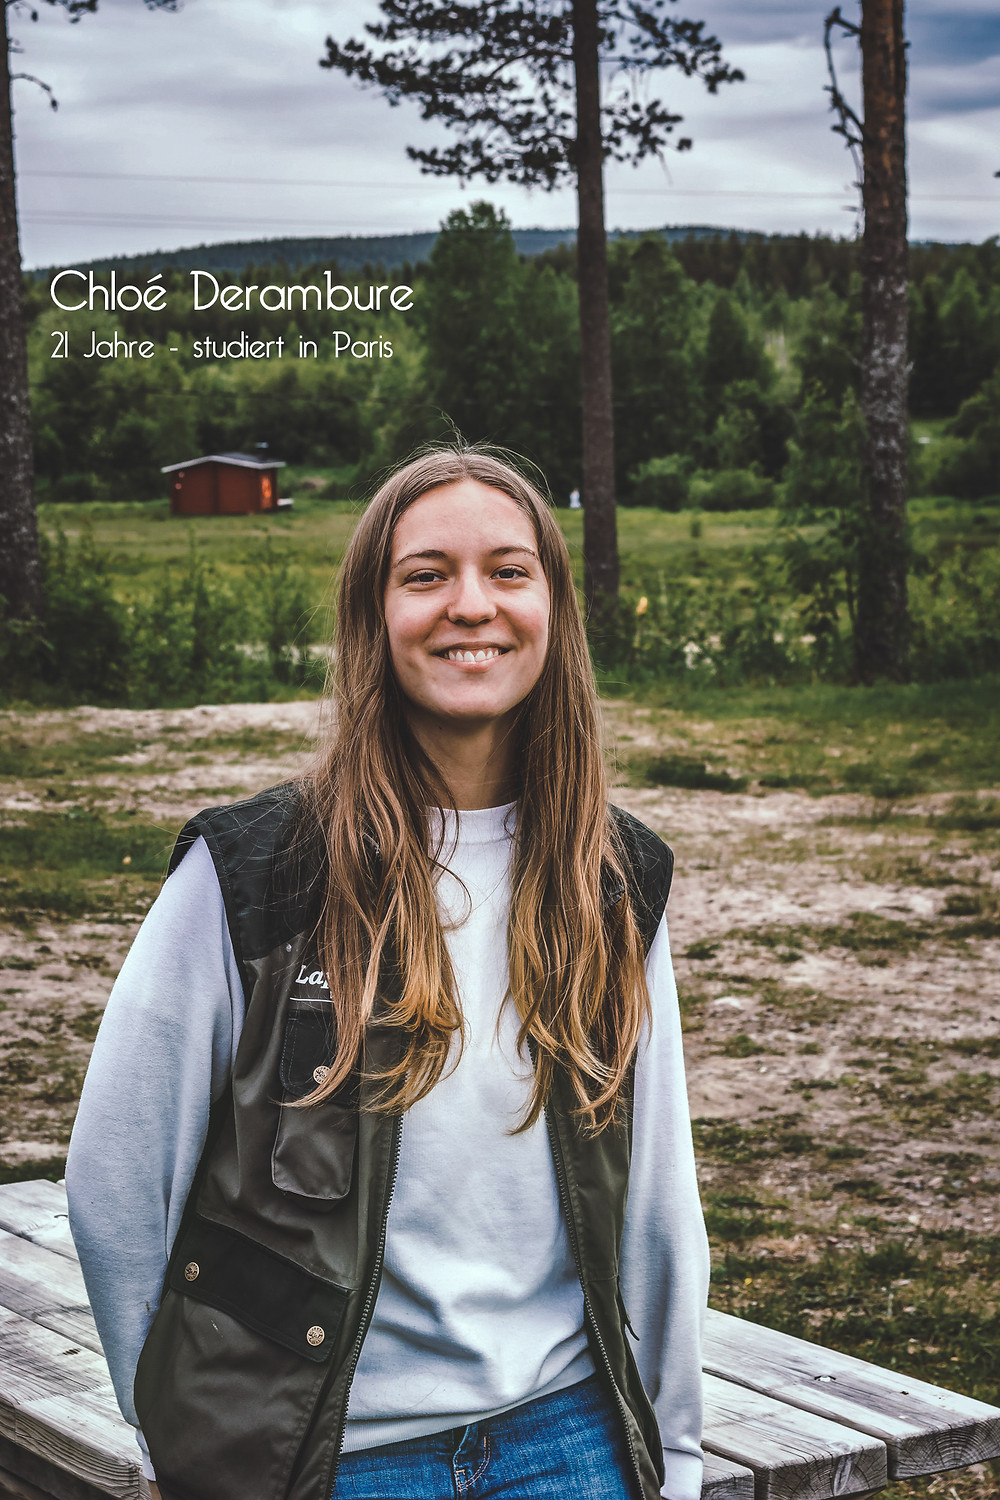 Cloé Derambure, 21 Jahre - studiert in Paris